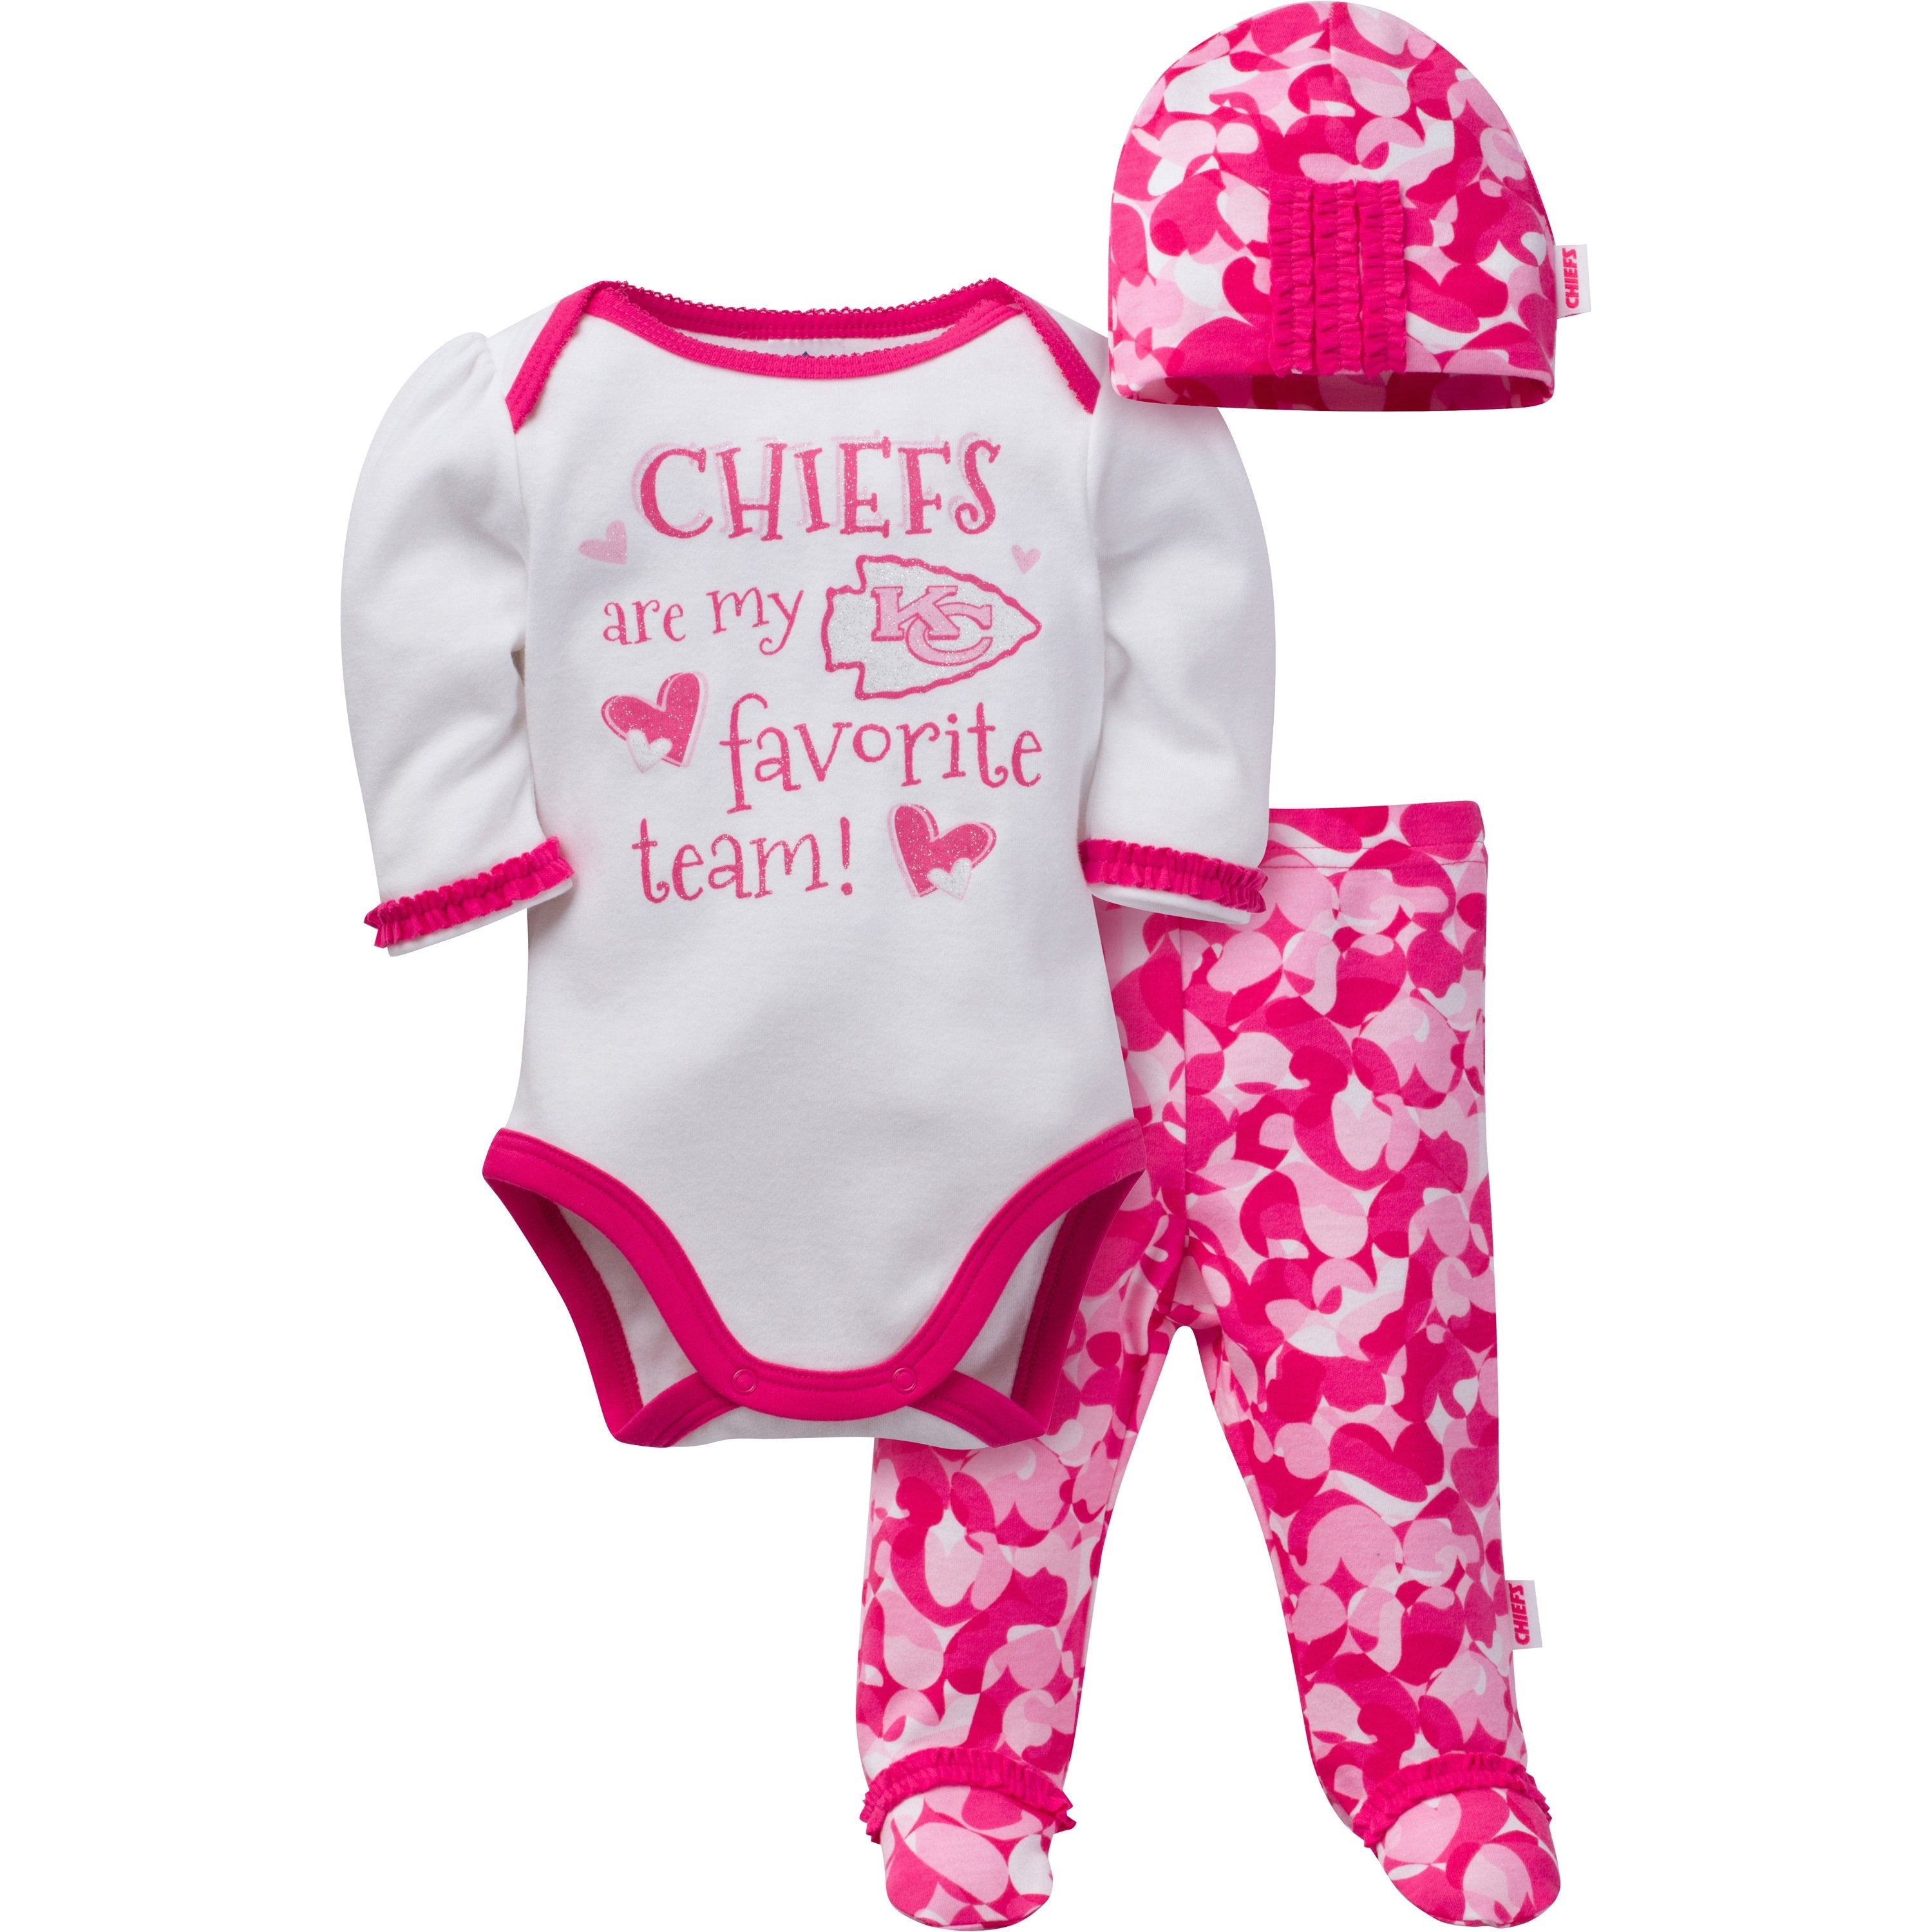 on sale d9b27 86147 Kansas City Chiefs Baby Girls 3 Piece Bodysuit, Footed Pant and Cap Set